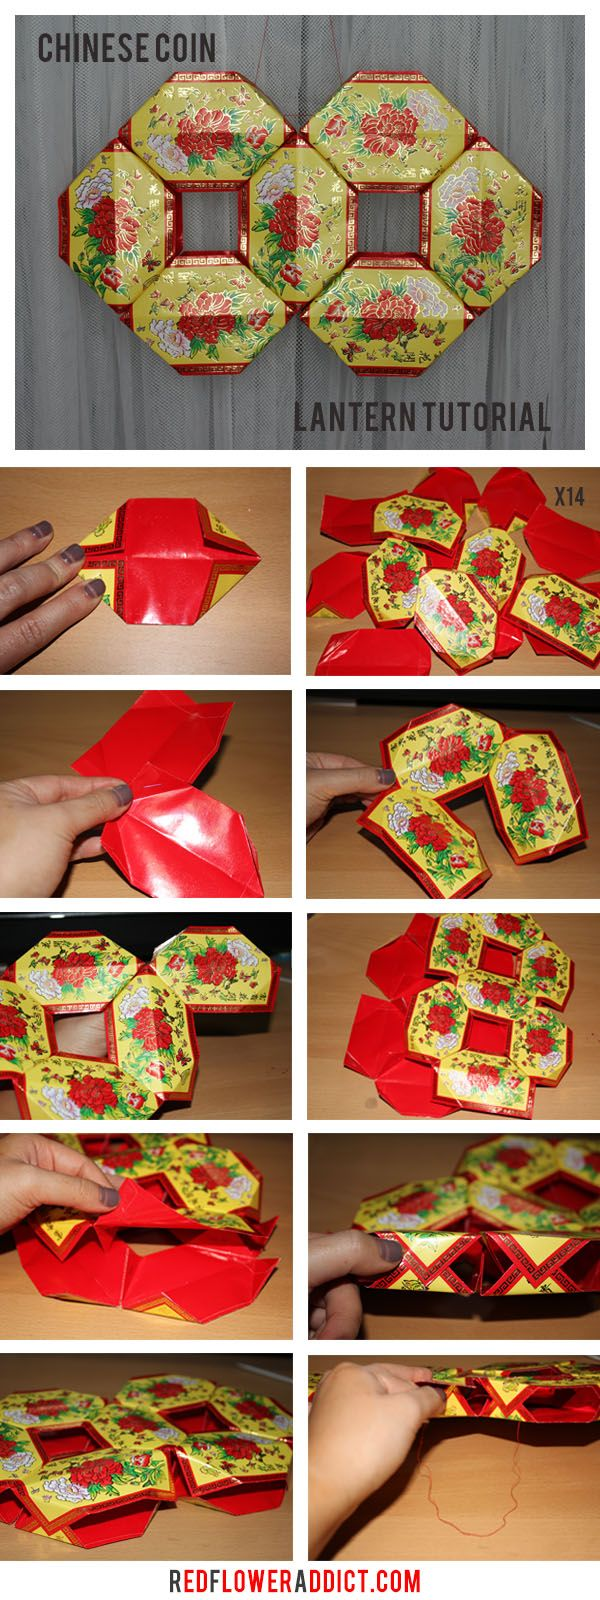 Chinese New Year Coin Lantern DIY Tutorial. Made of Red ...